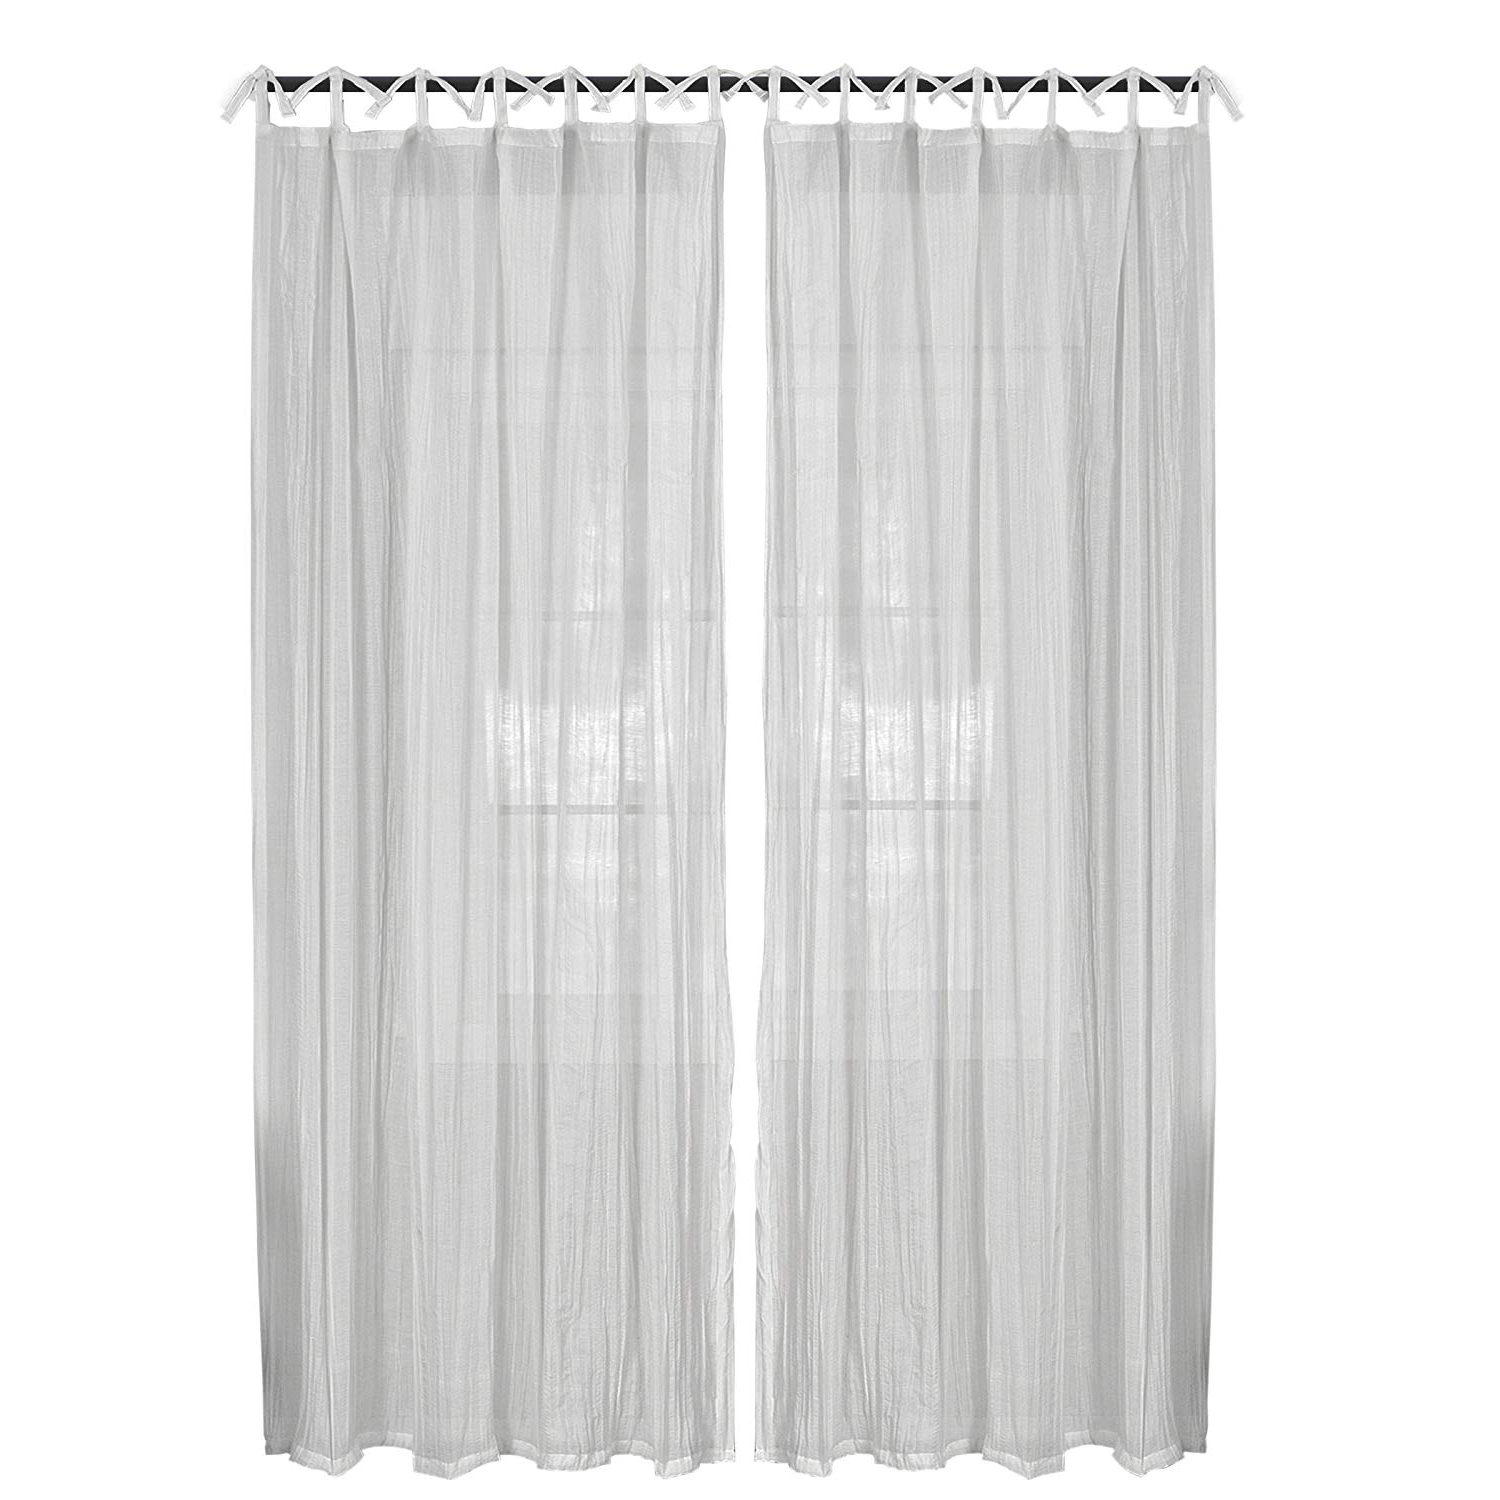 "Tab Top Sheer Single Curtain Panels In Well Known Elrene Home Fashions 26865638820 Juvenile Tween Tab Top Sheer Single Panel Window Curtain Drape, 52"" X 84"", White, 50"" X 84"", (View 12 of 20)"